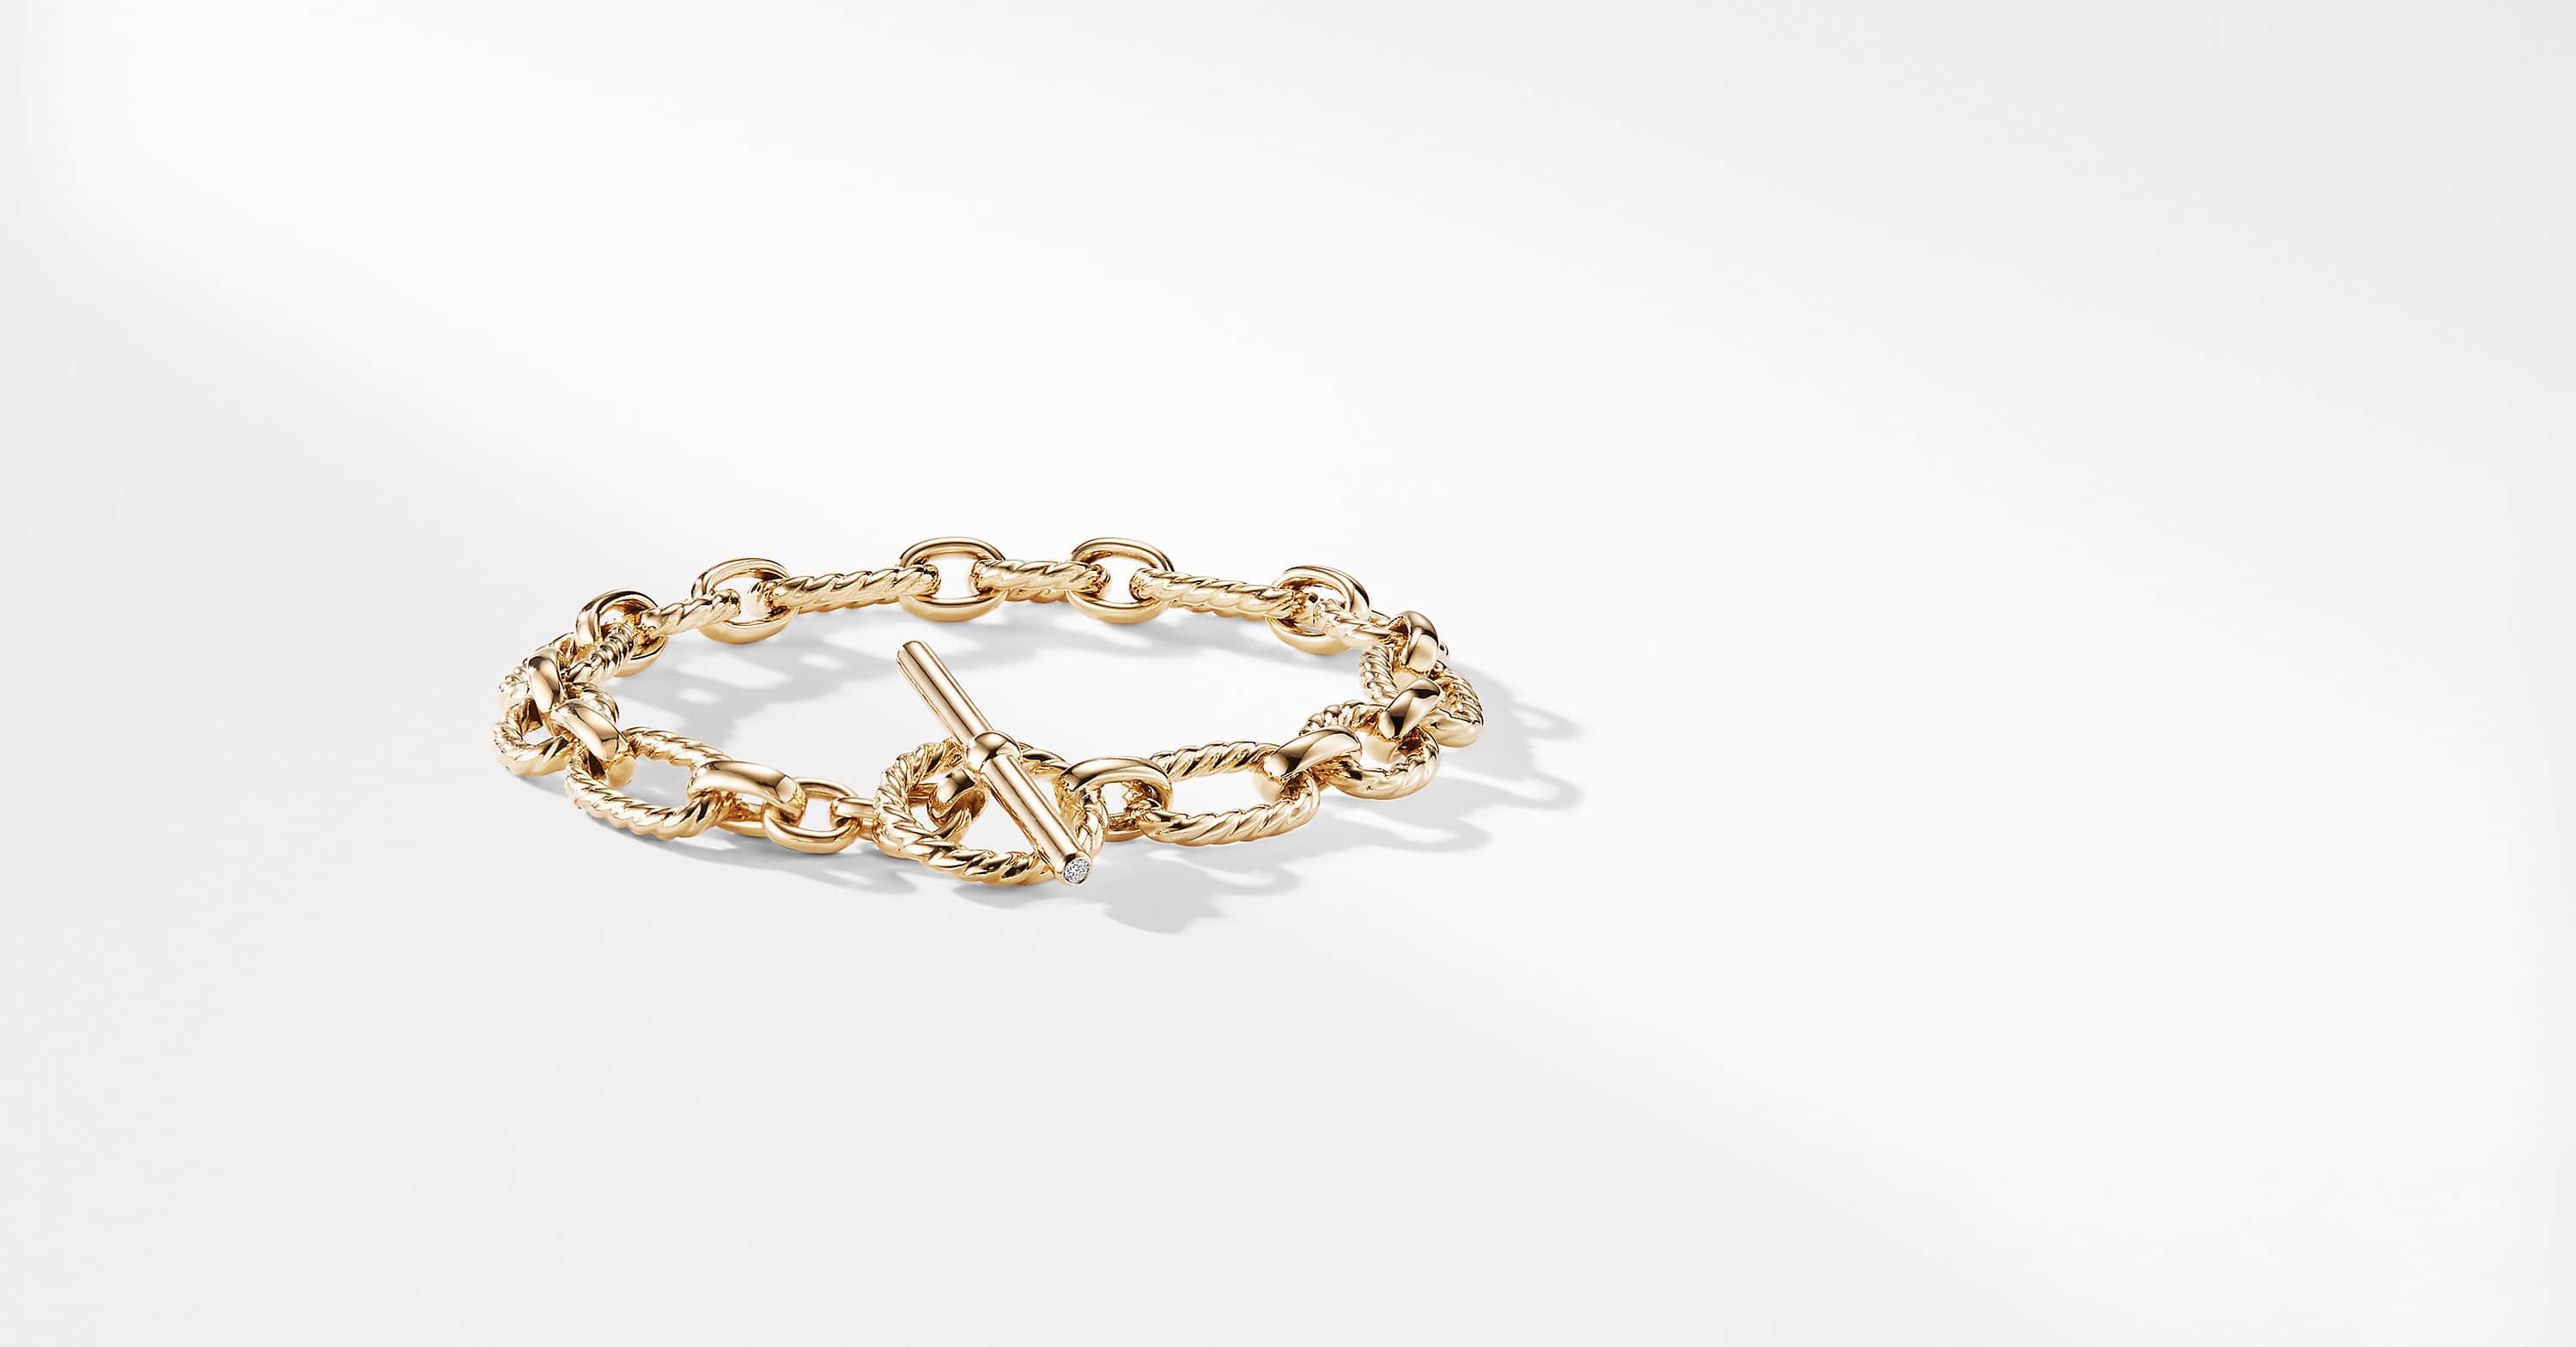 Cushion Link Bracelet with Diamonds in 18K Gold, 9.5mm